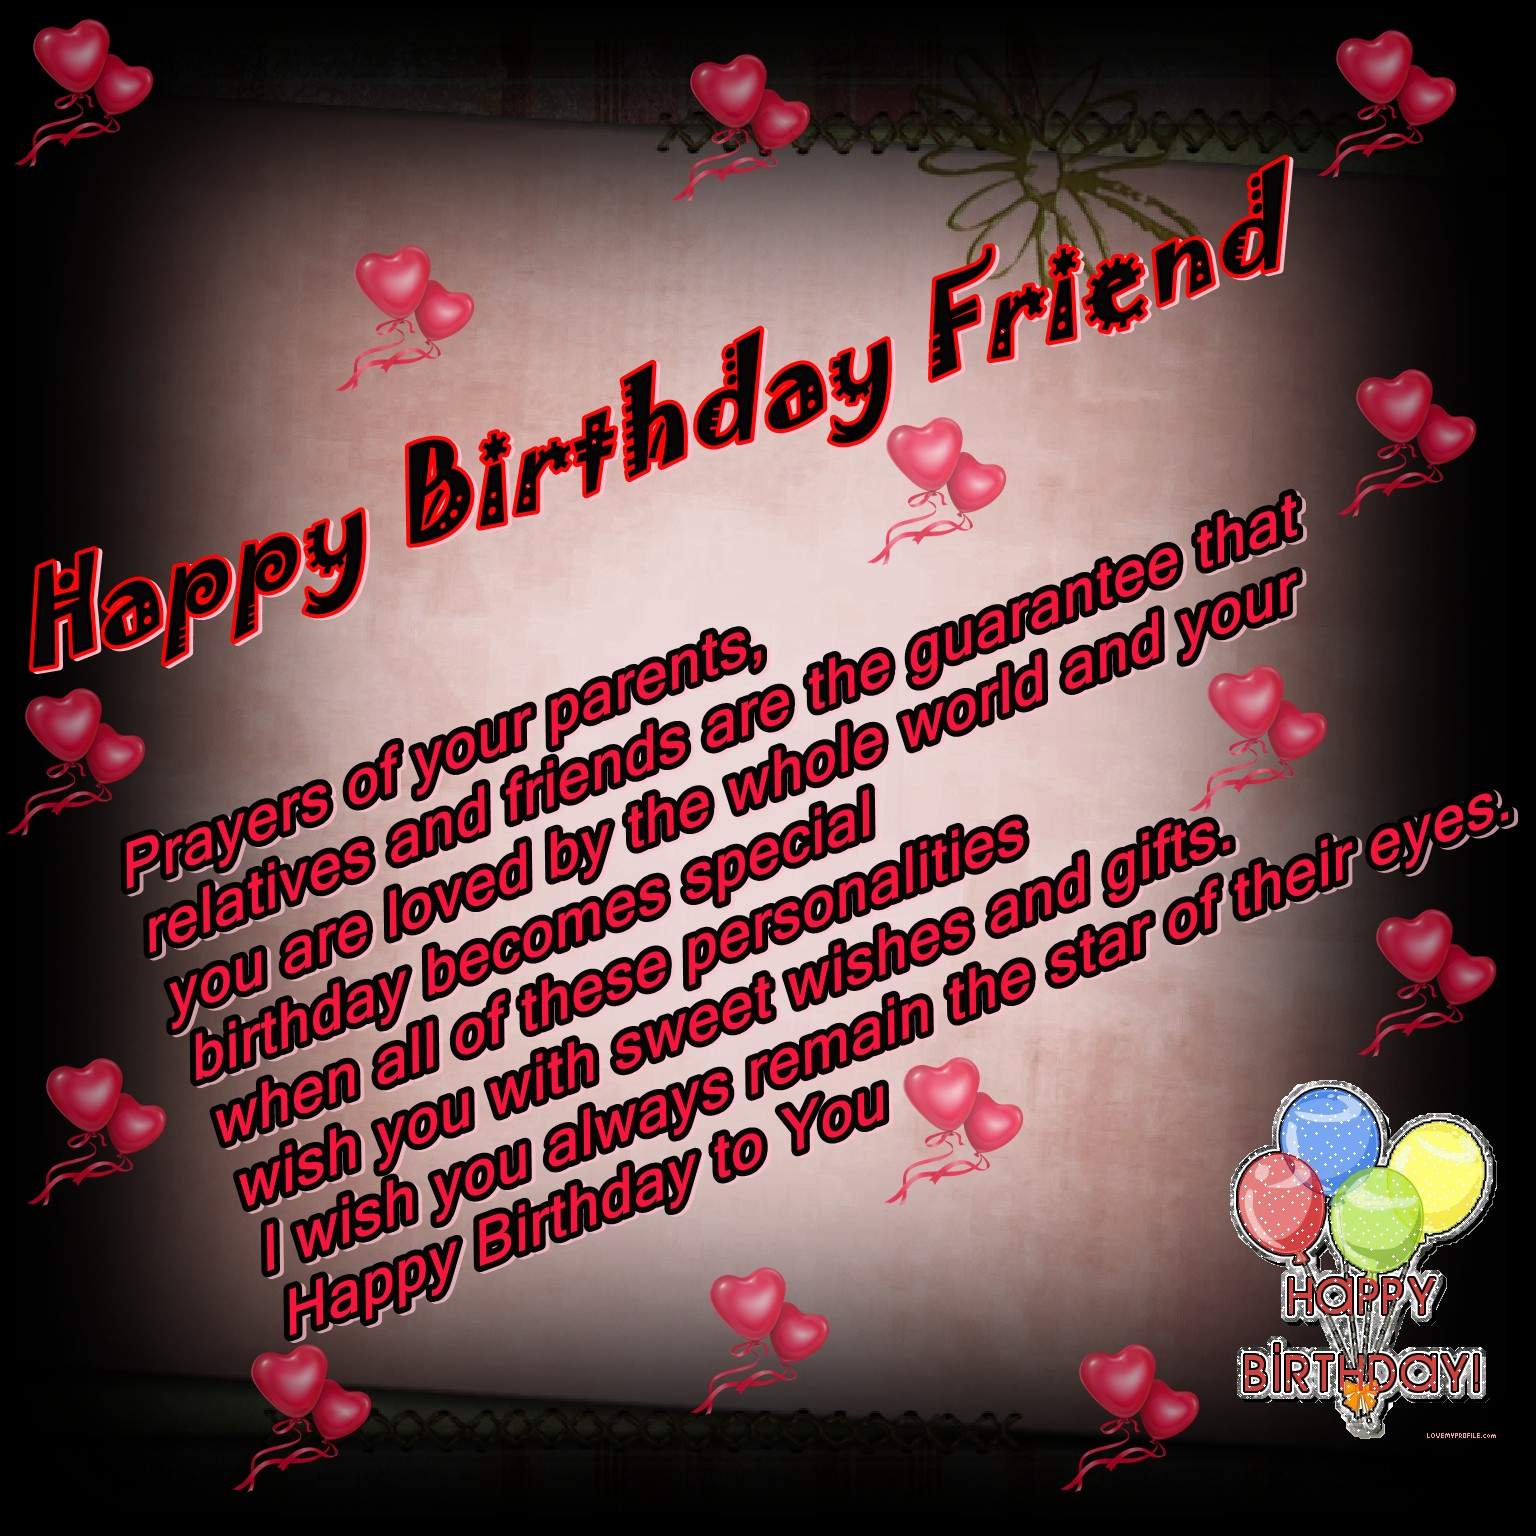 Best ideas about Birthday Wishes To A Friend . Save or Pin Happy Birthday Now.